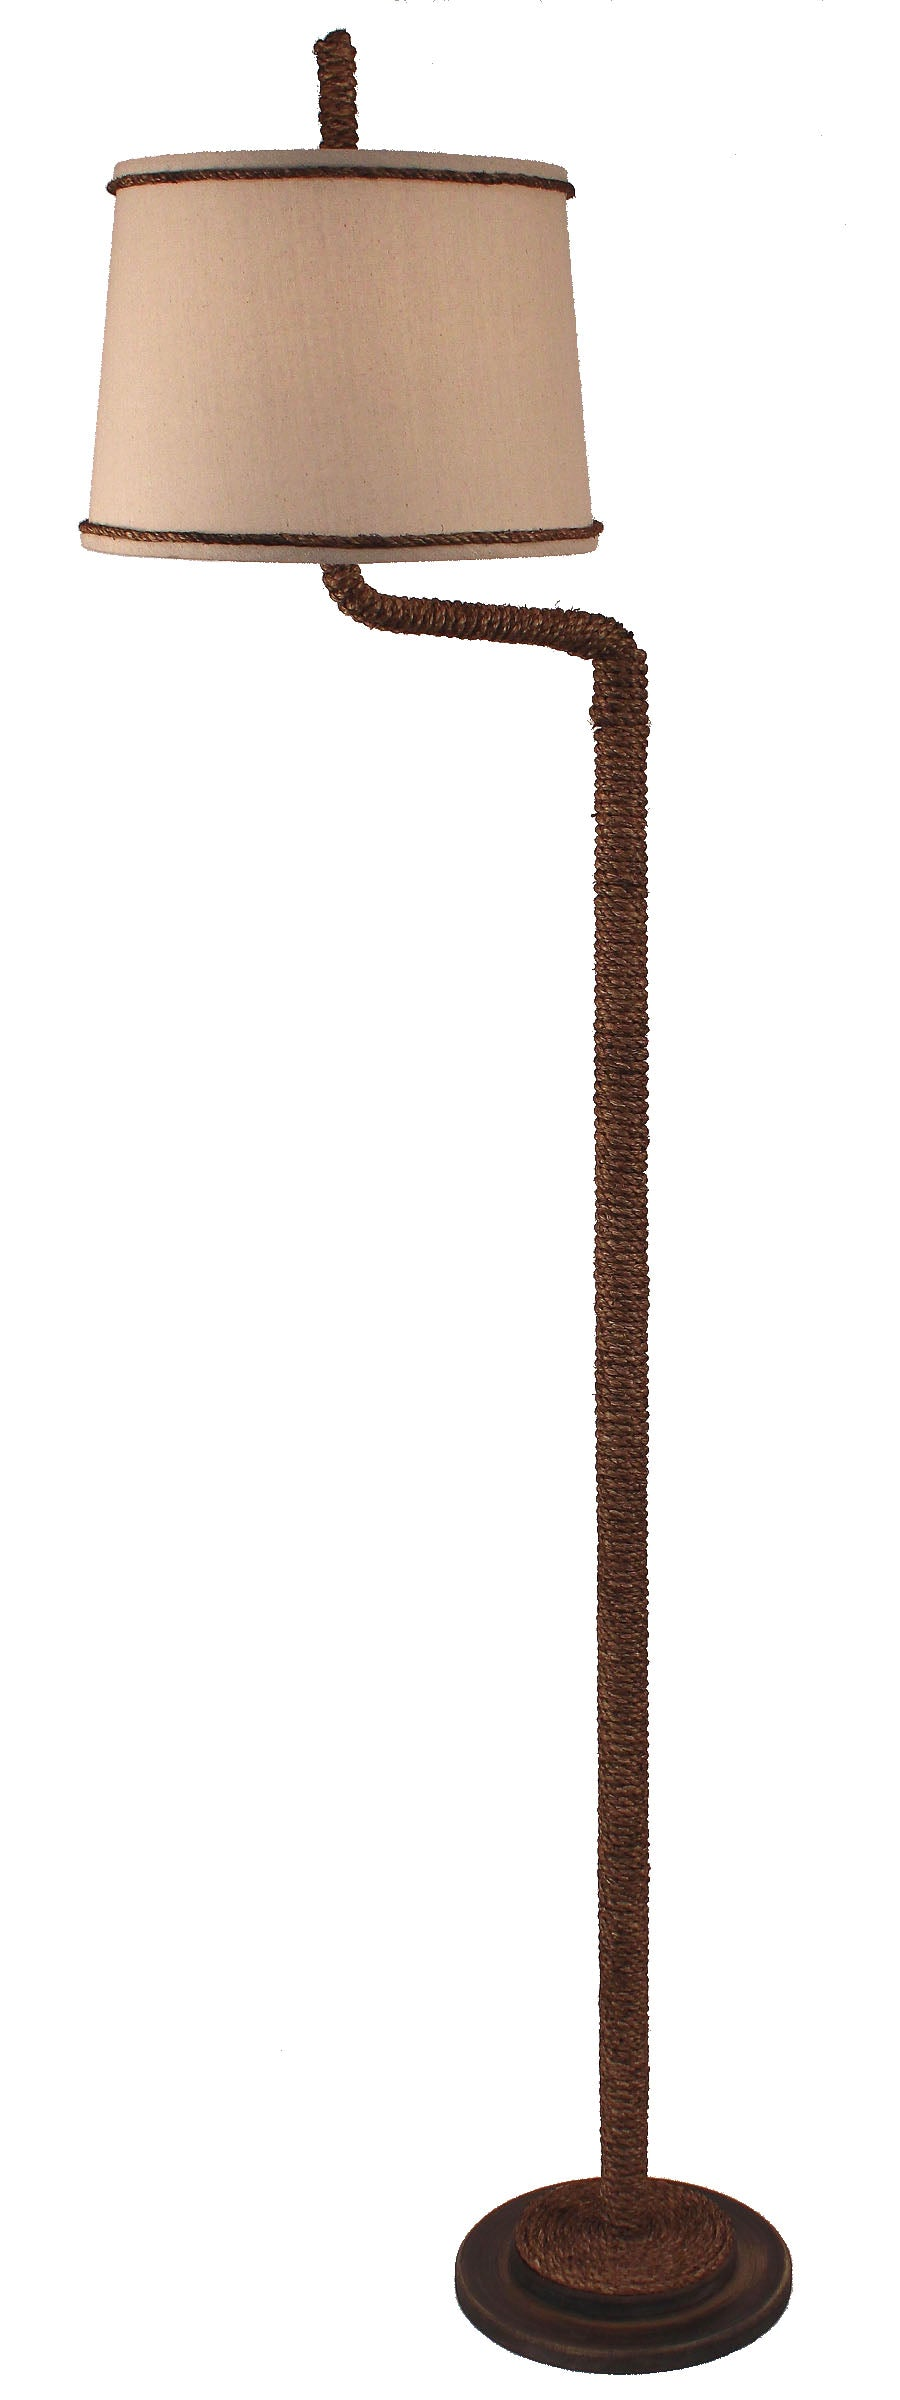 Dark Sandalwood Manila Rope Swing Arm Floor Lamp - Coast Lamp Shop